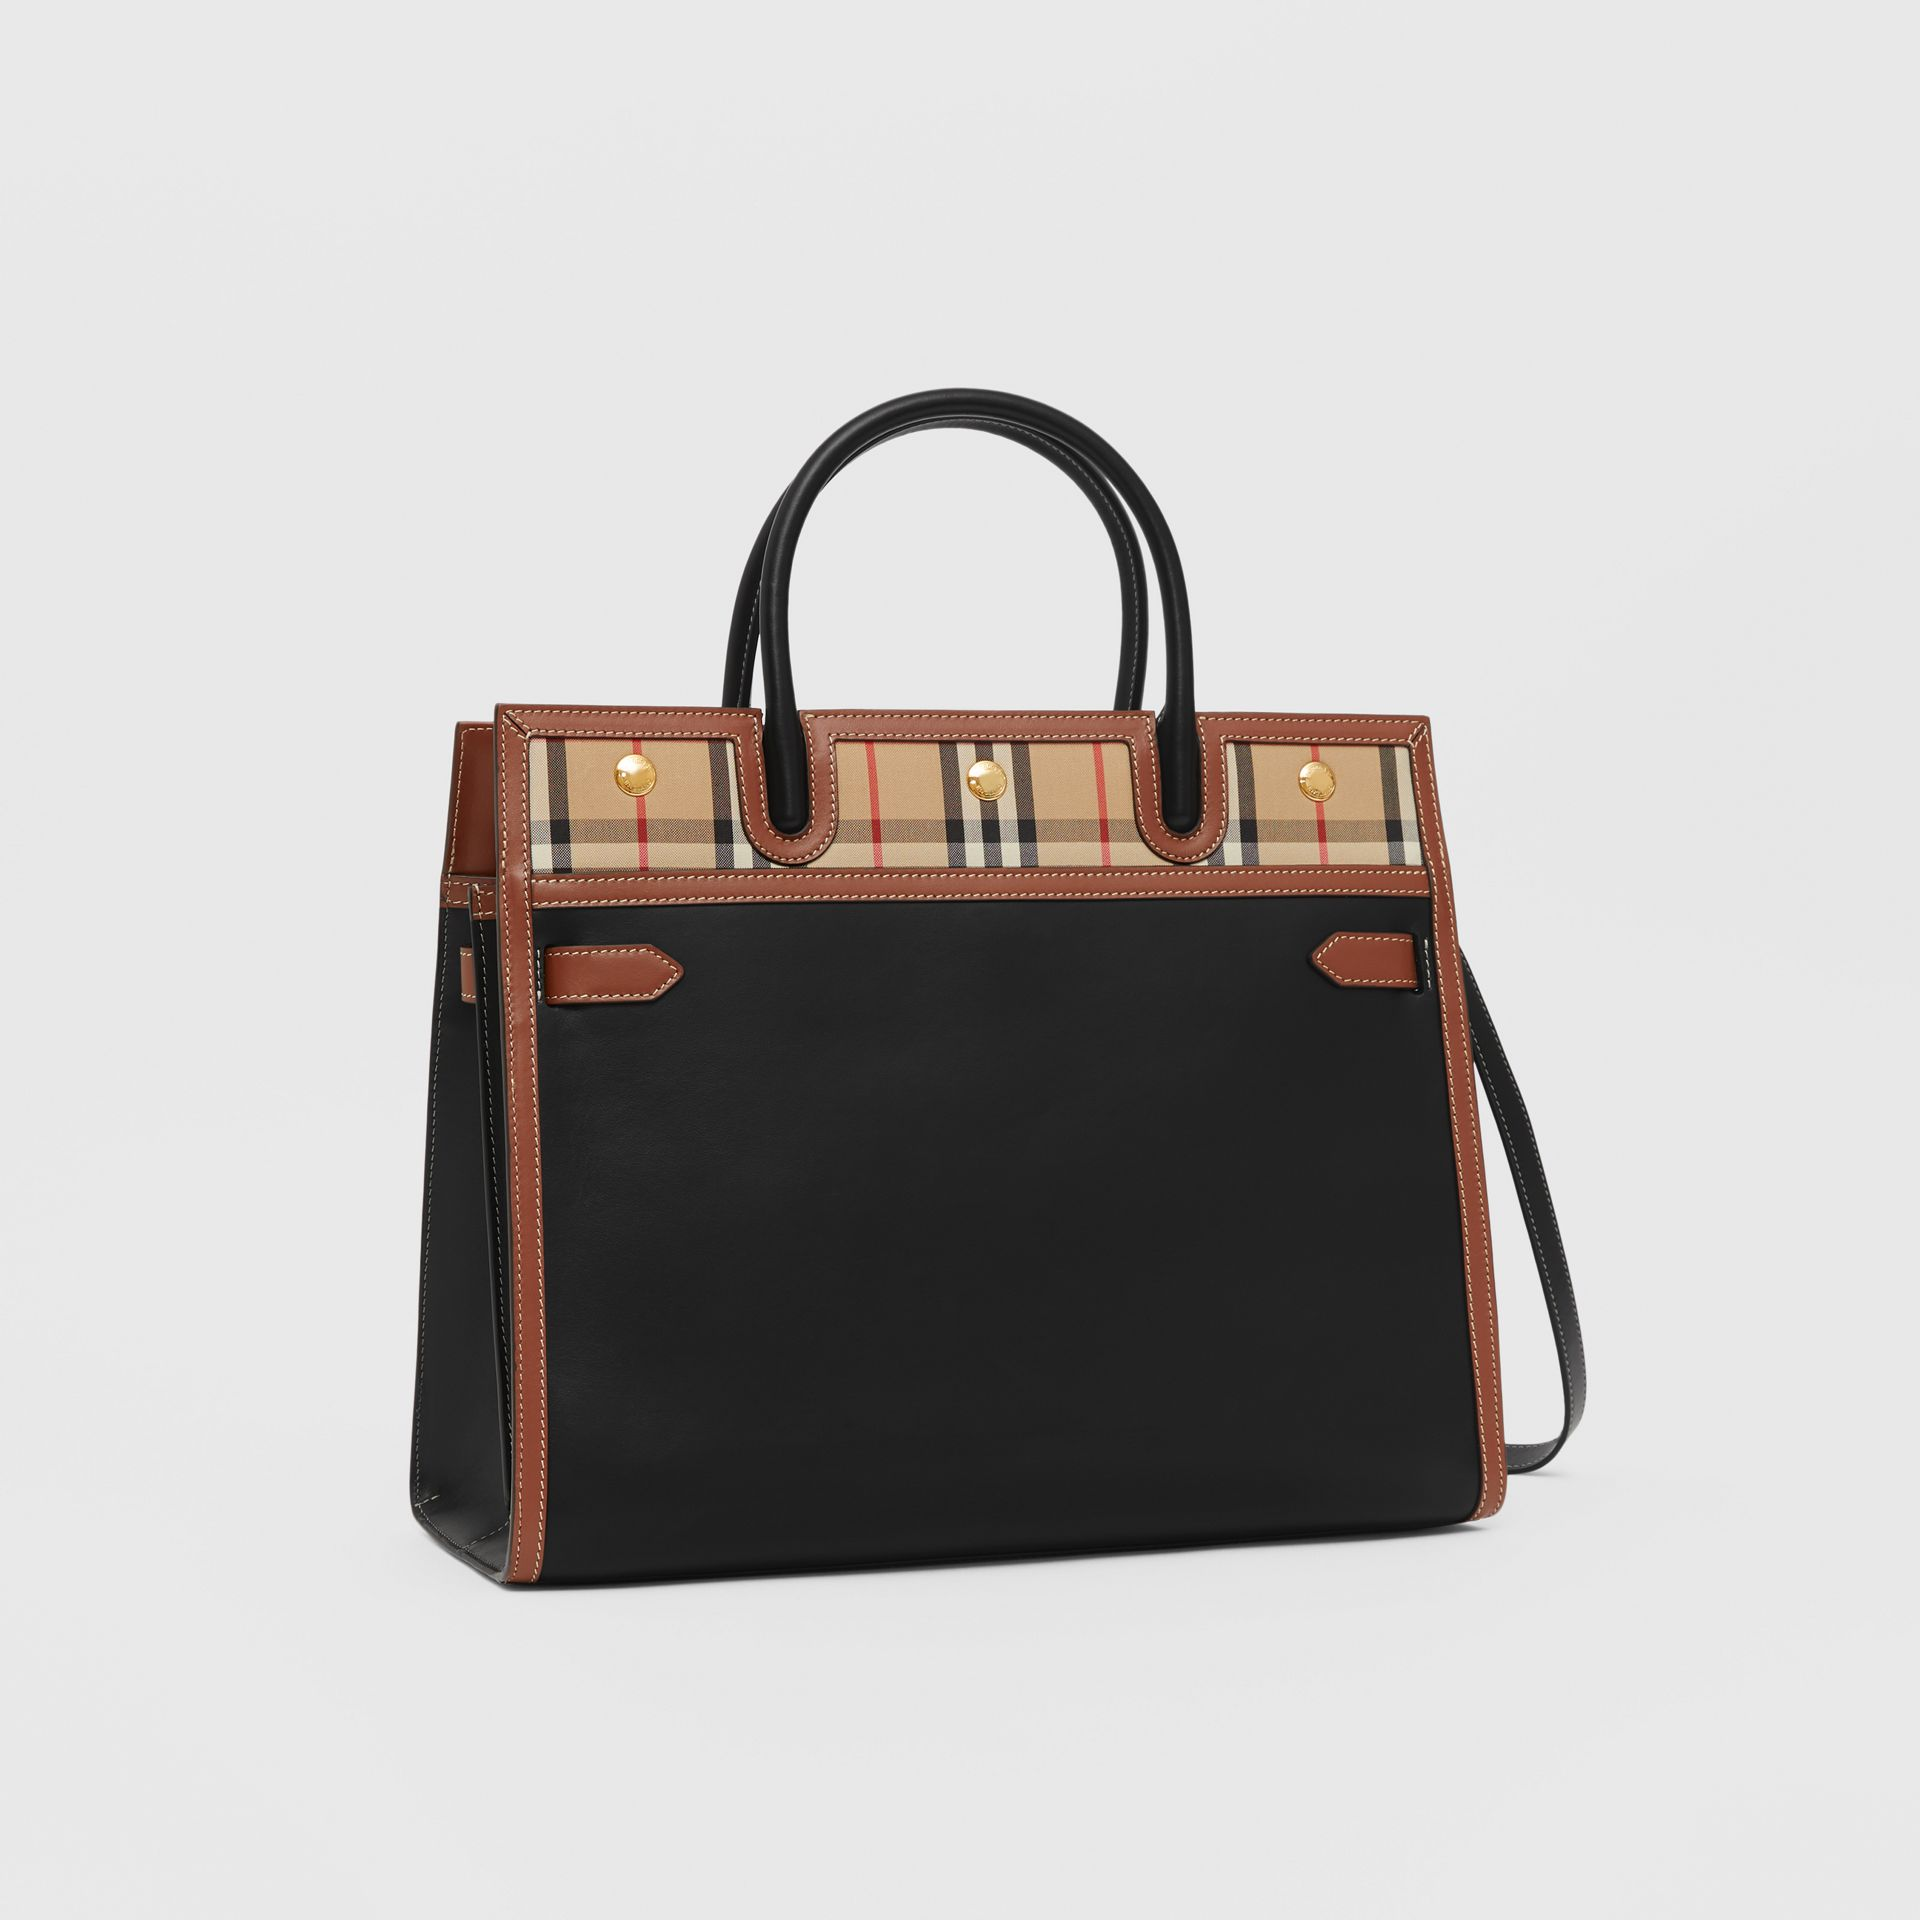 Medium Leather and Vintage Check Two-handle Title Bag in Black - Women | Burberry - gallery image 6